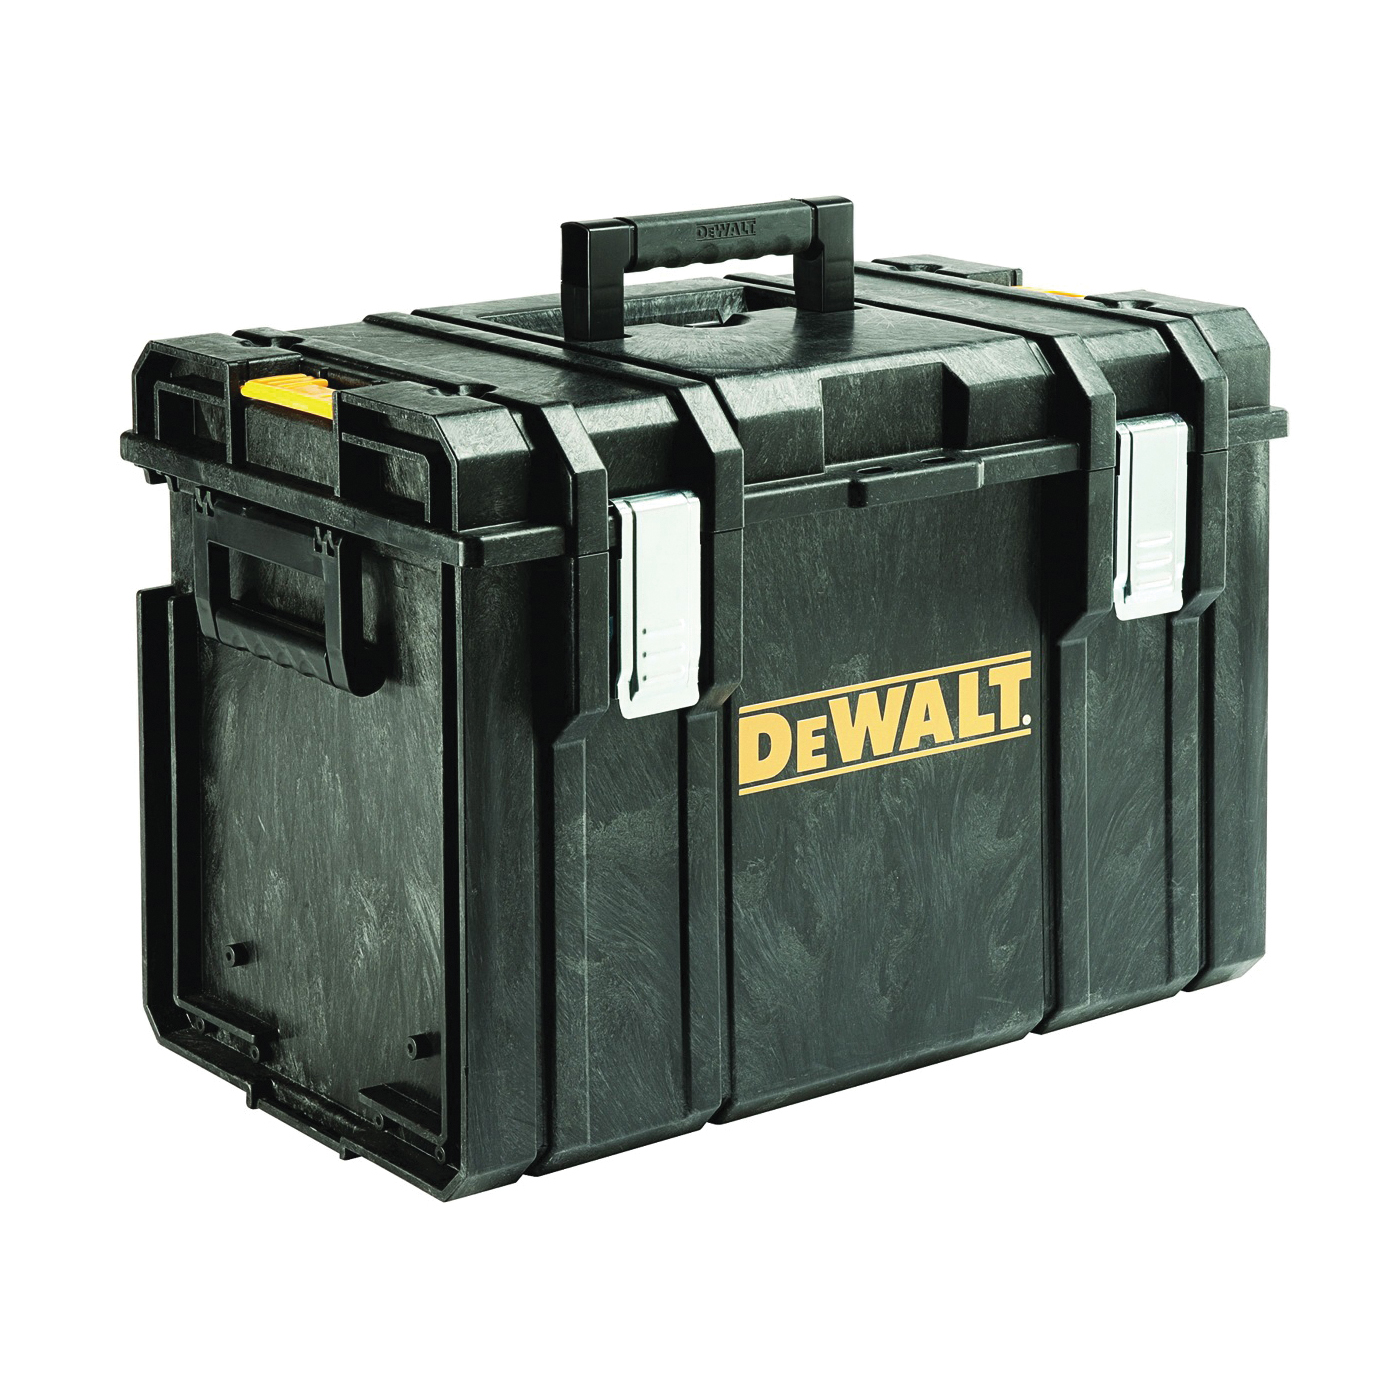 Picture of DeWALT ToughSystem DS400 Series DWST08204 Tool Box, 110 lb, Plastic, Black